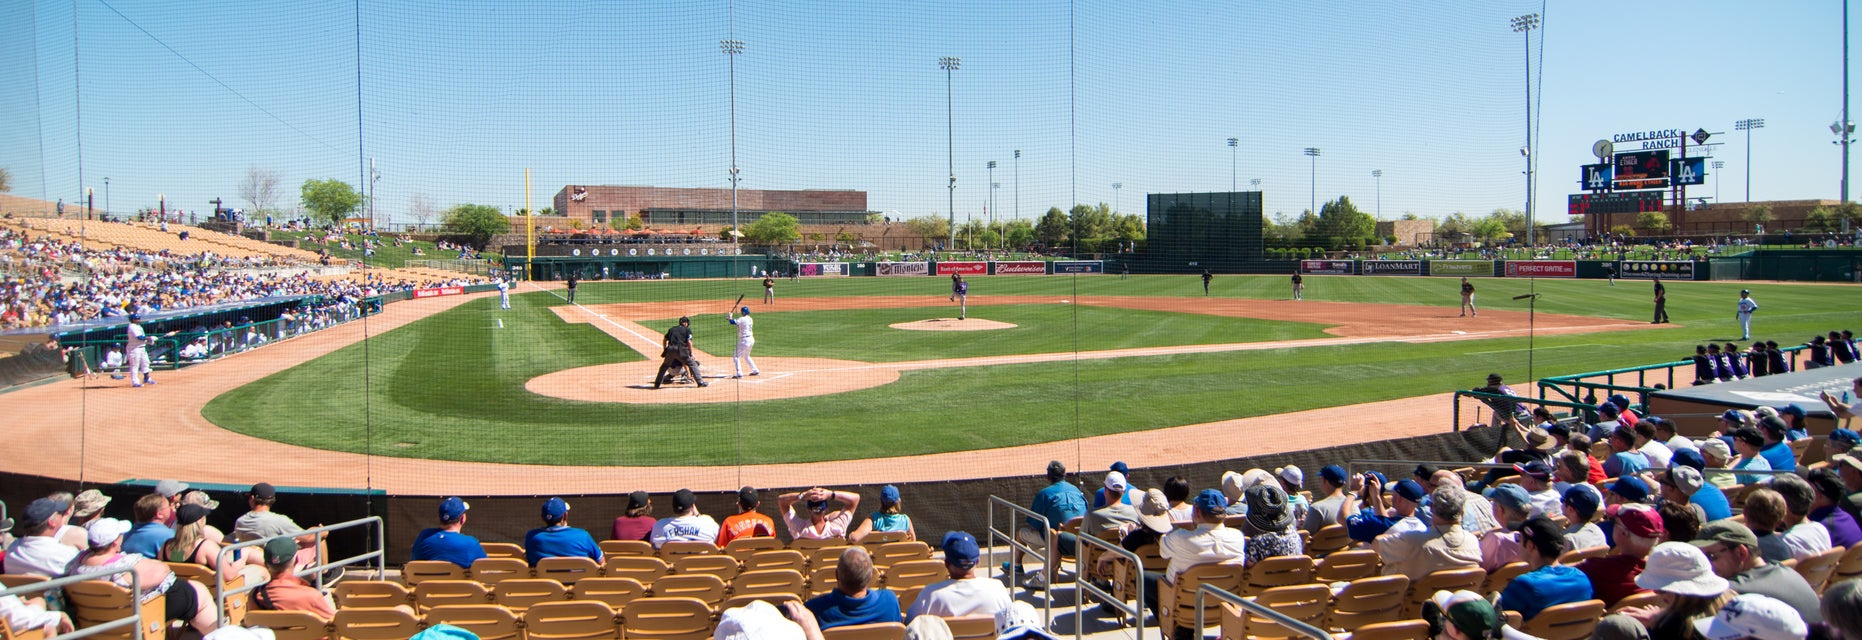 Dodgers - Spring Training Tickets